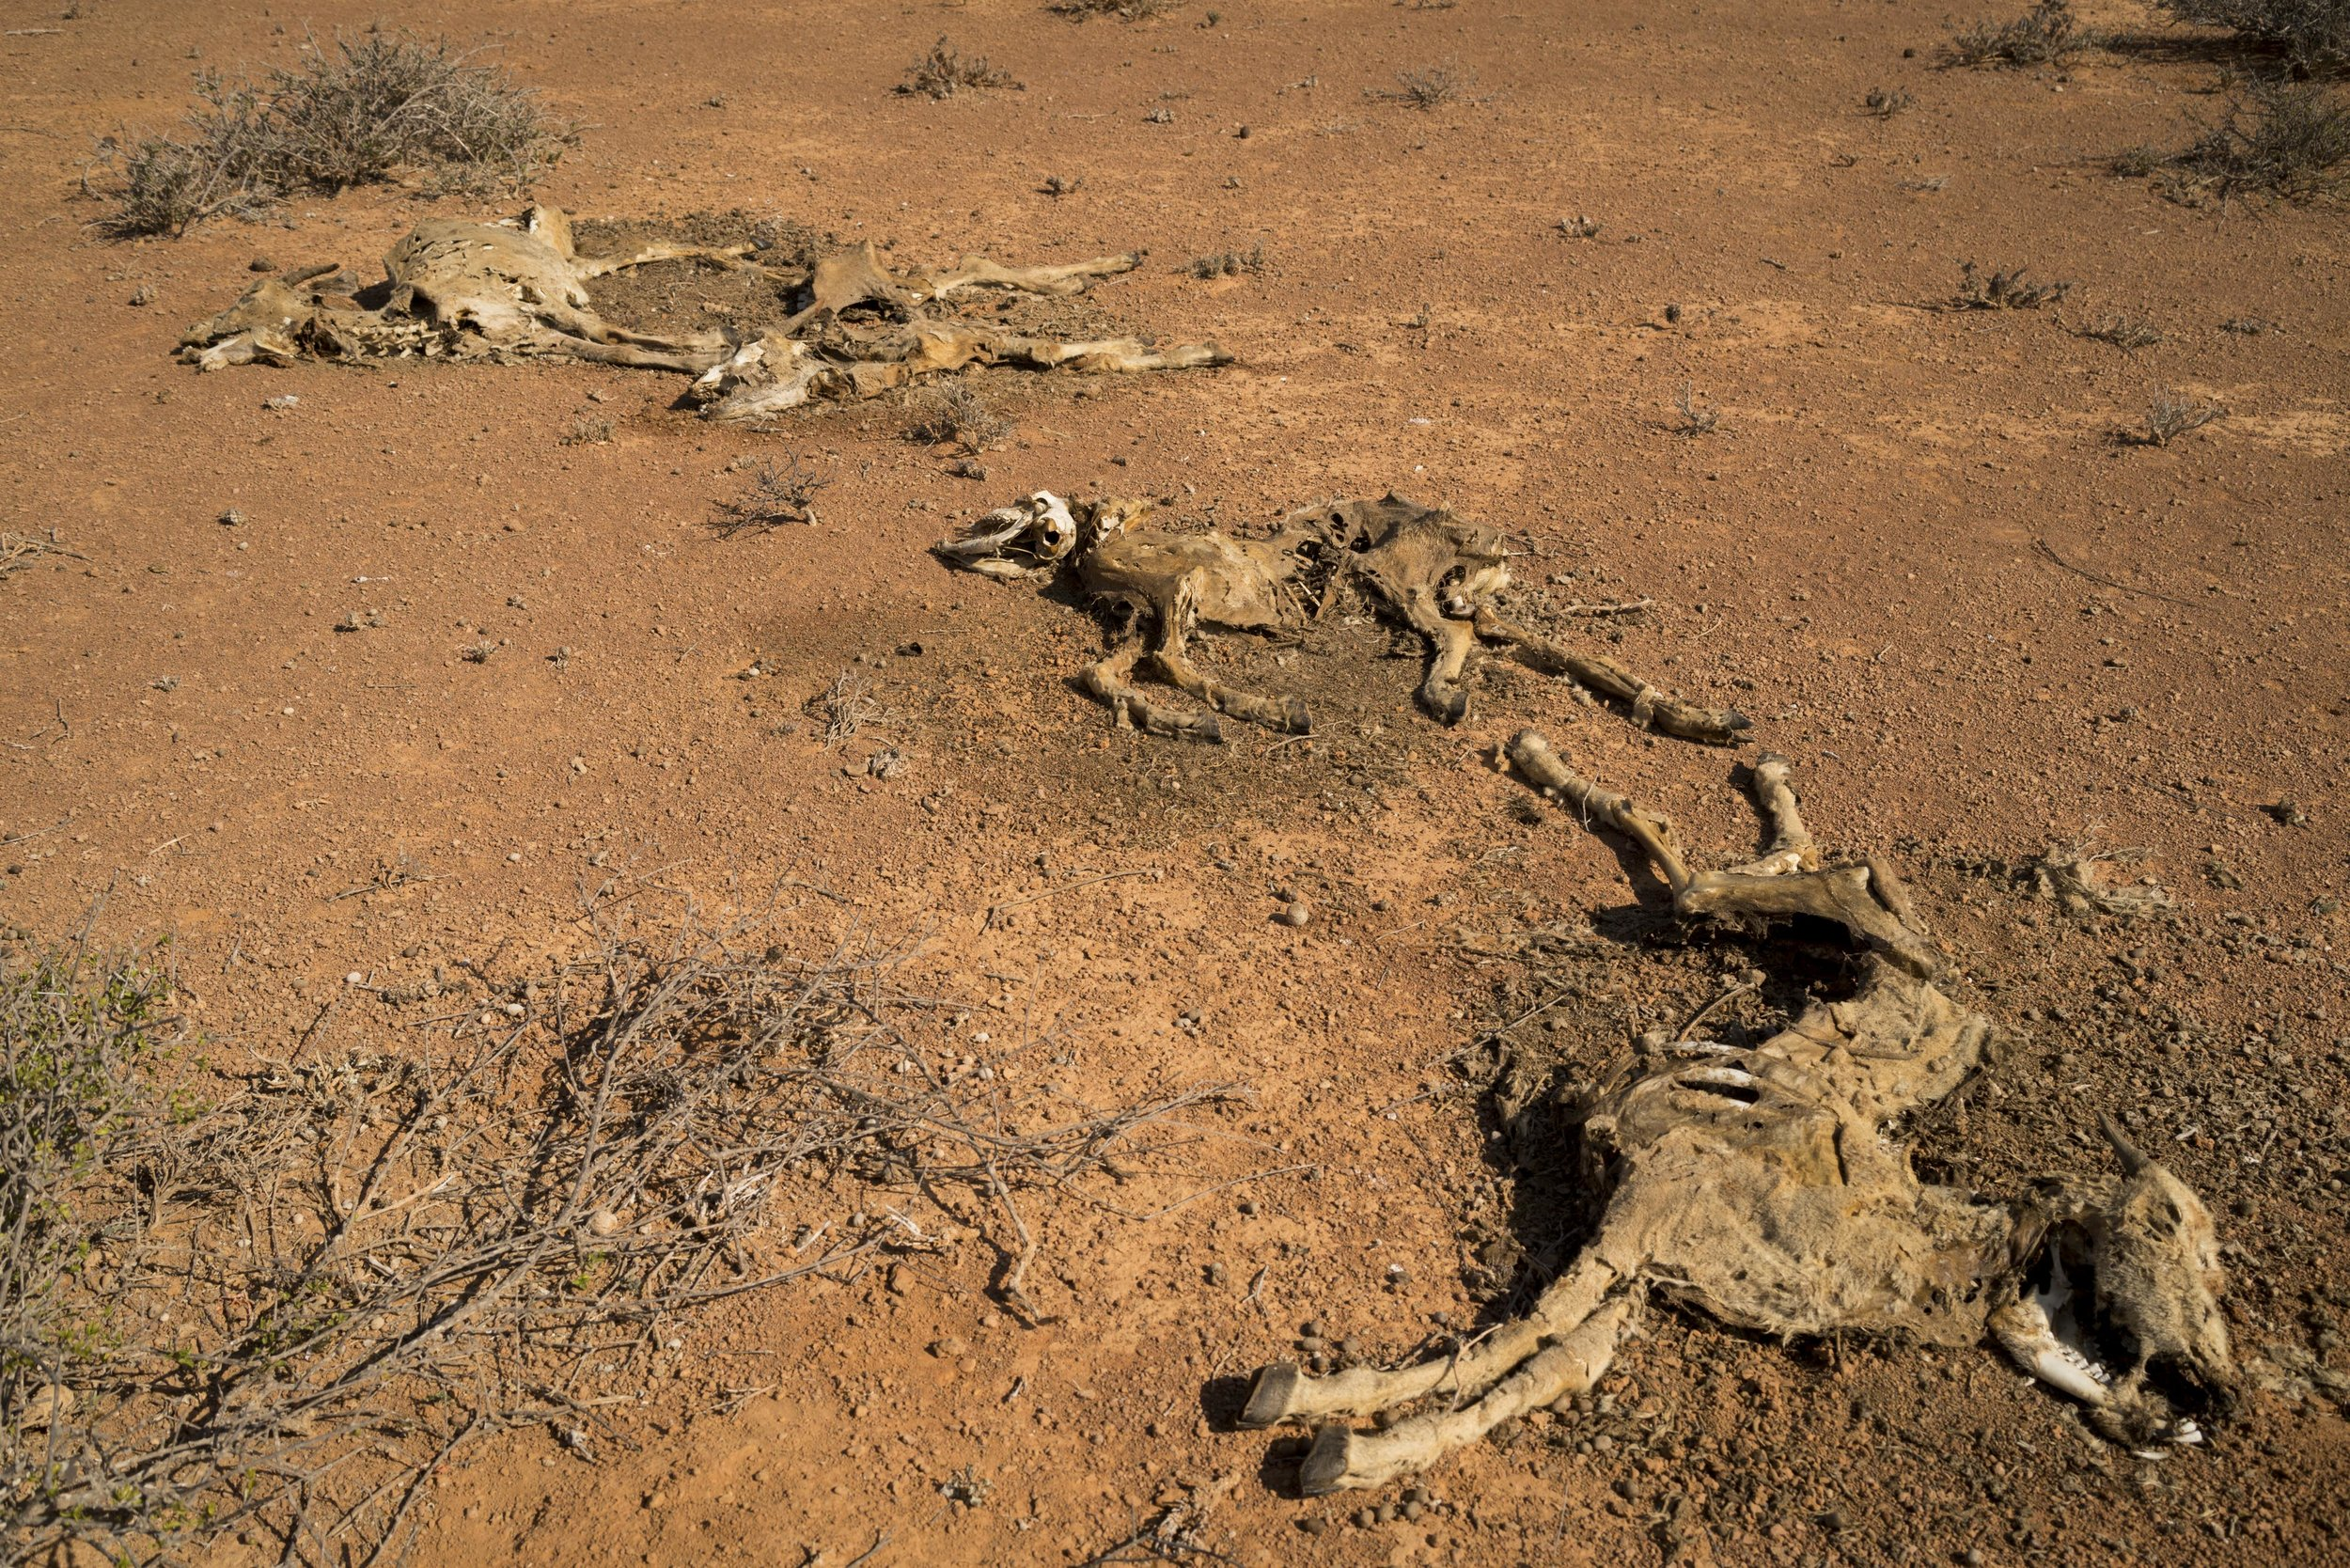 The remains of dead goats lie along the road where they were discarded by trucks that had attempted to transport them in the search of food and water in Puntland, northern Somalia, February 18, 2017.